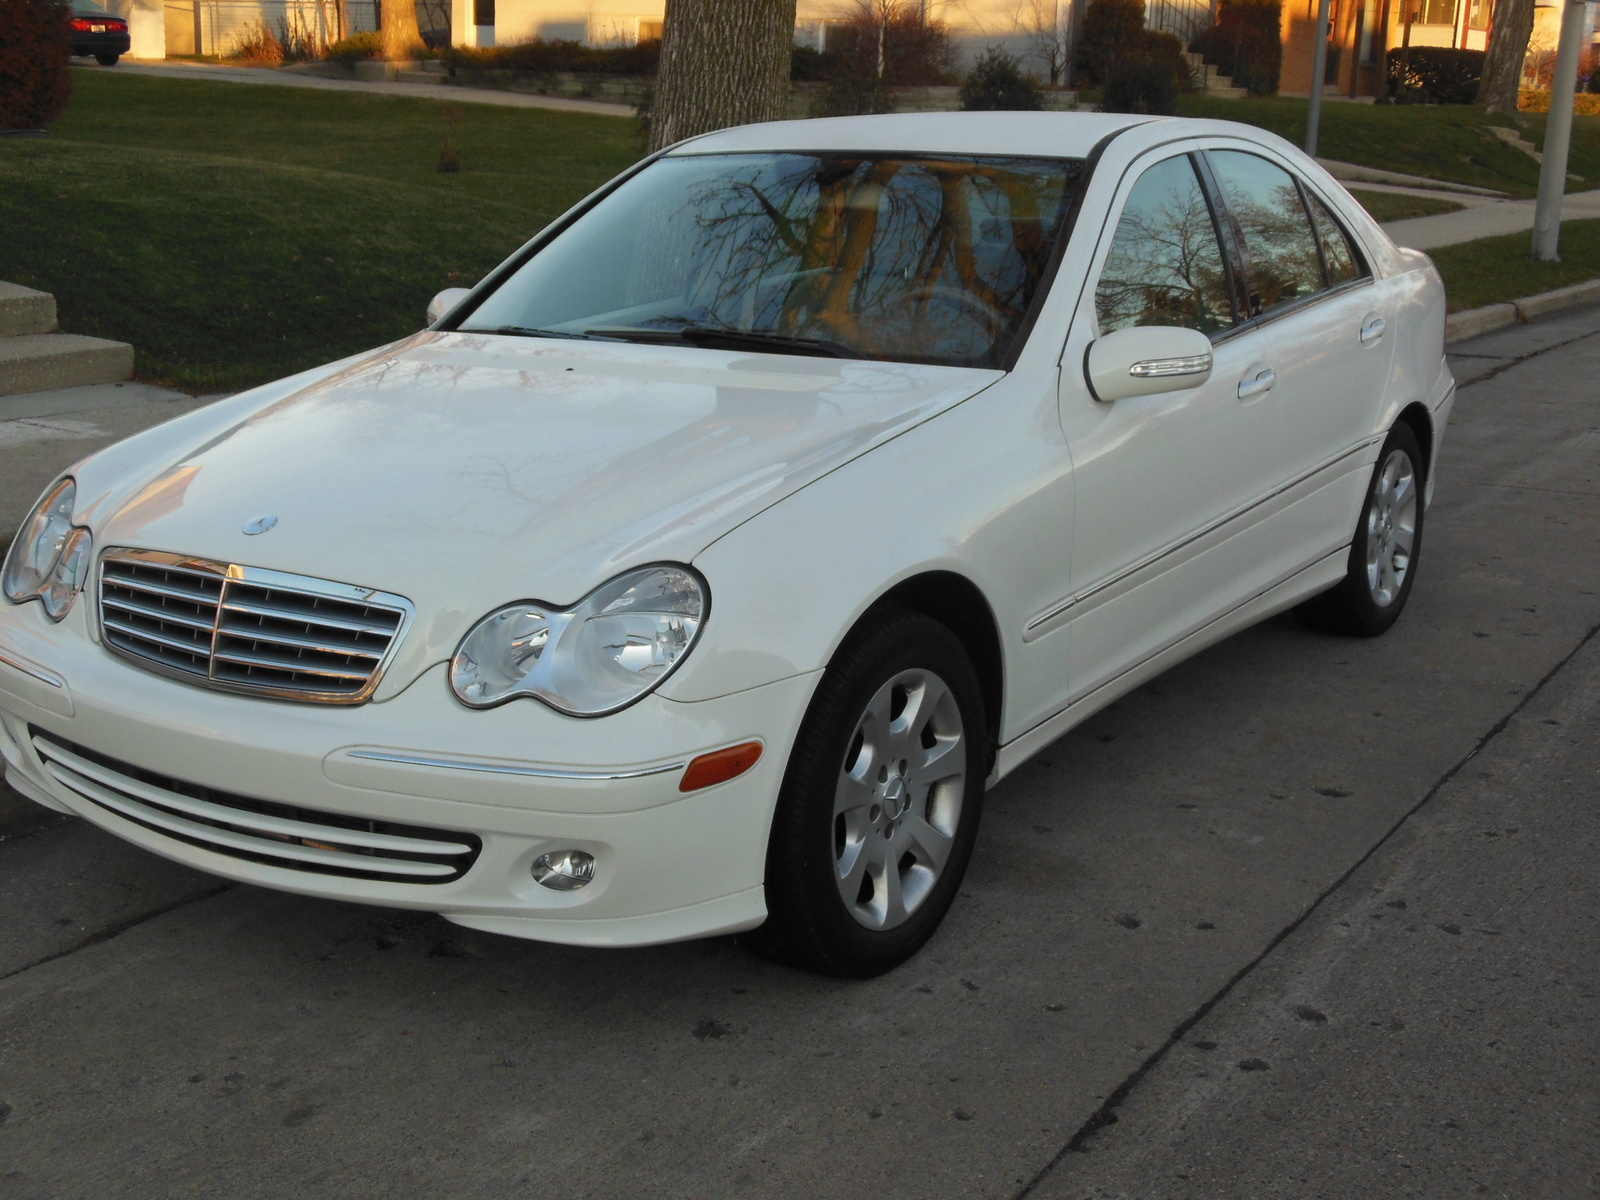 2005 mercedes benz c class pictures cargurus for Mercedes benz suv 2005